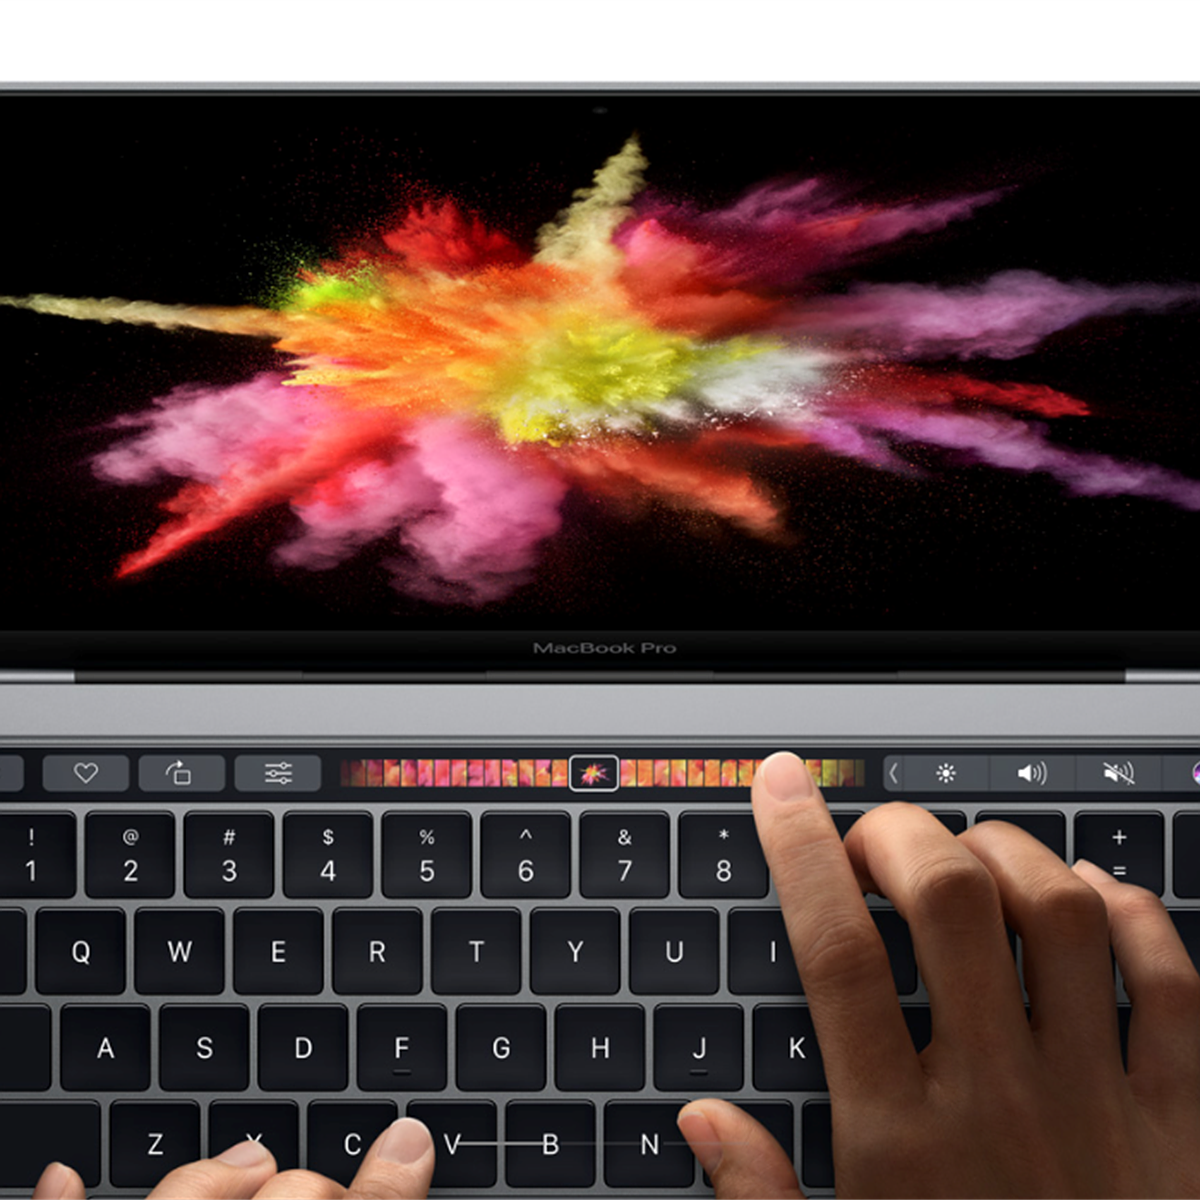 Apple revamps MacBook Pro lineup, adds 'Touch Bar': Digital